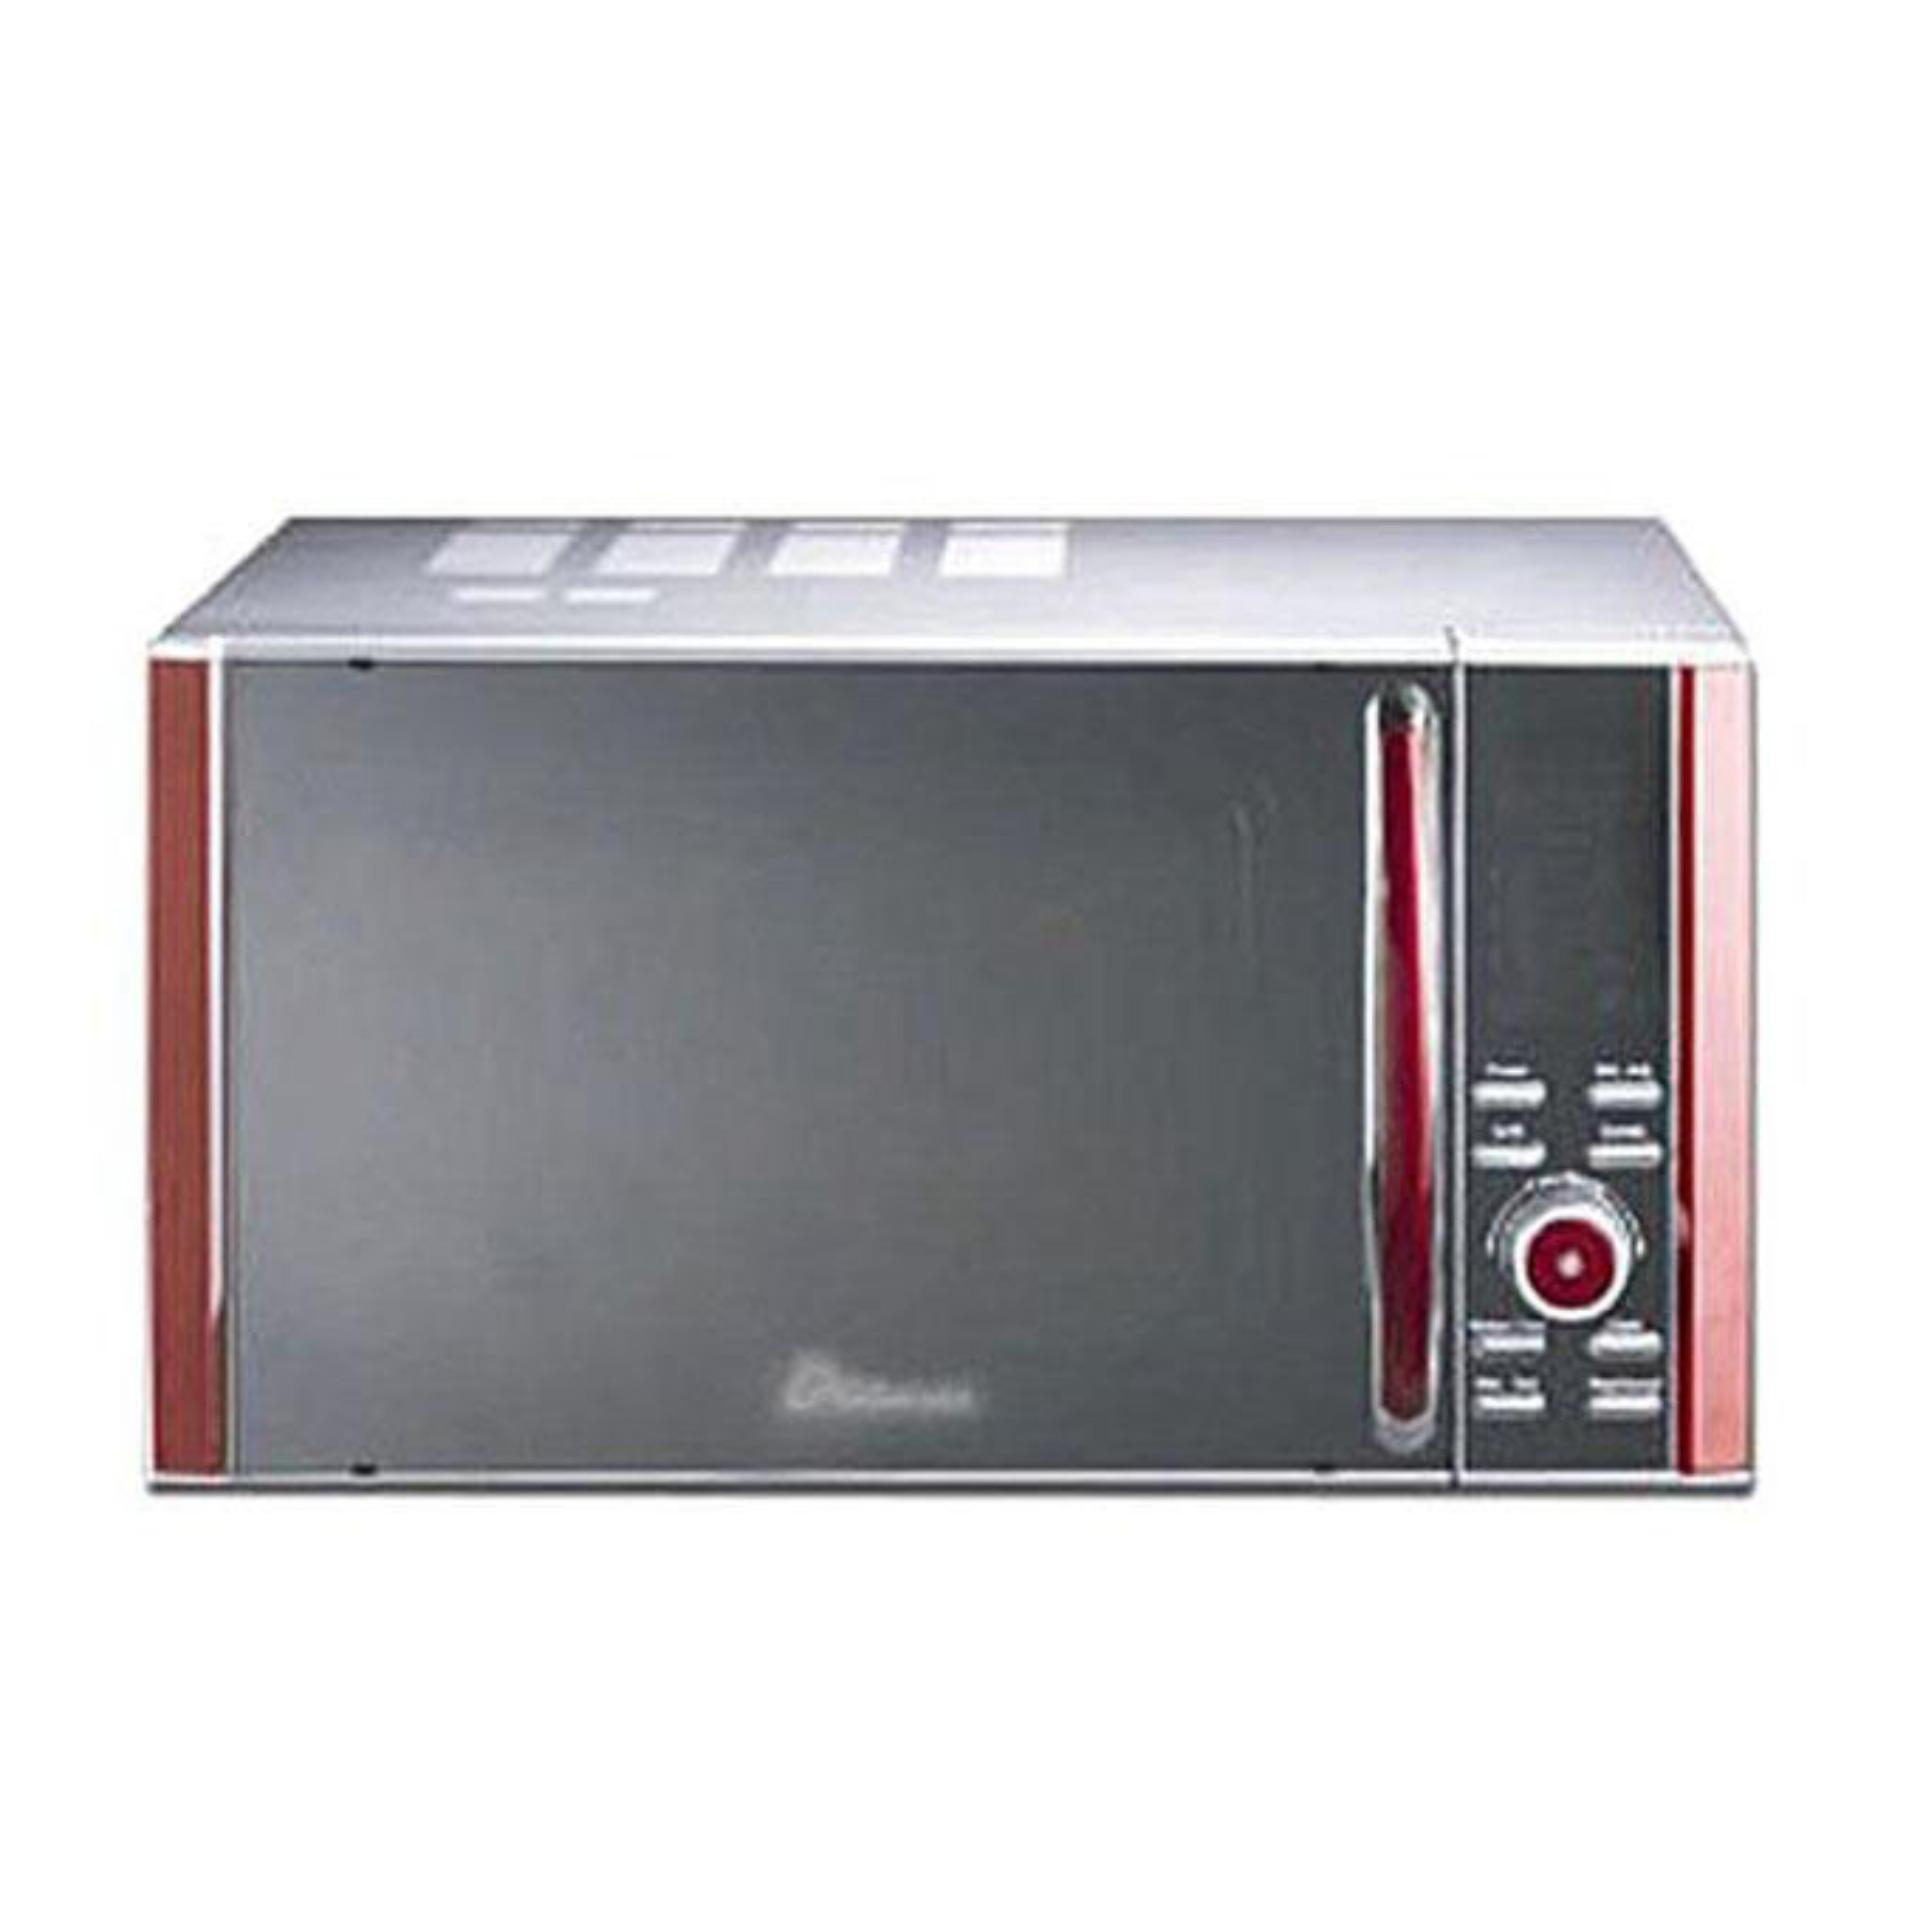 buy ocean,kingston microwaves at best prices online in bangladesh